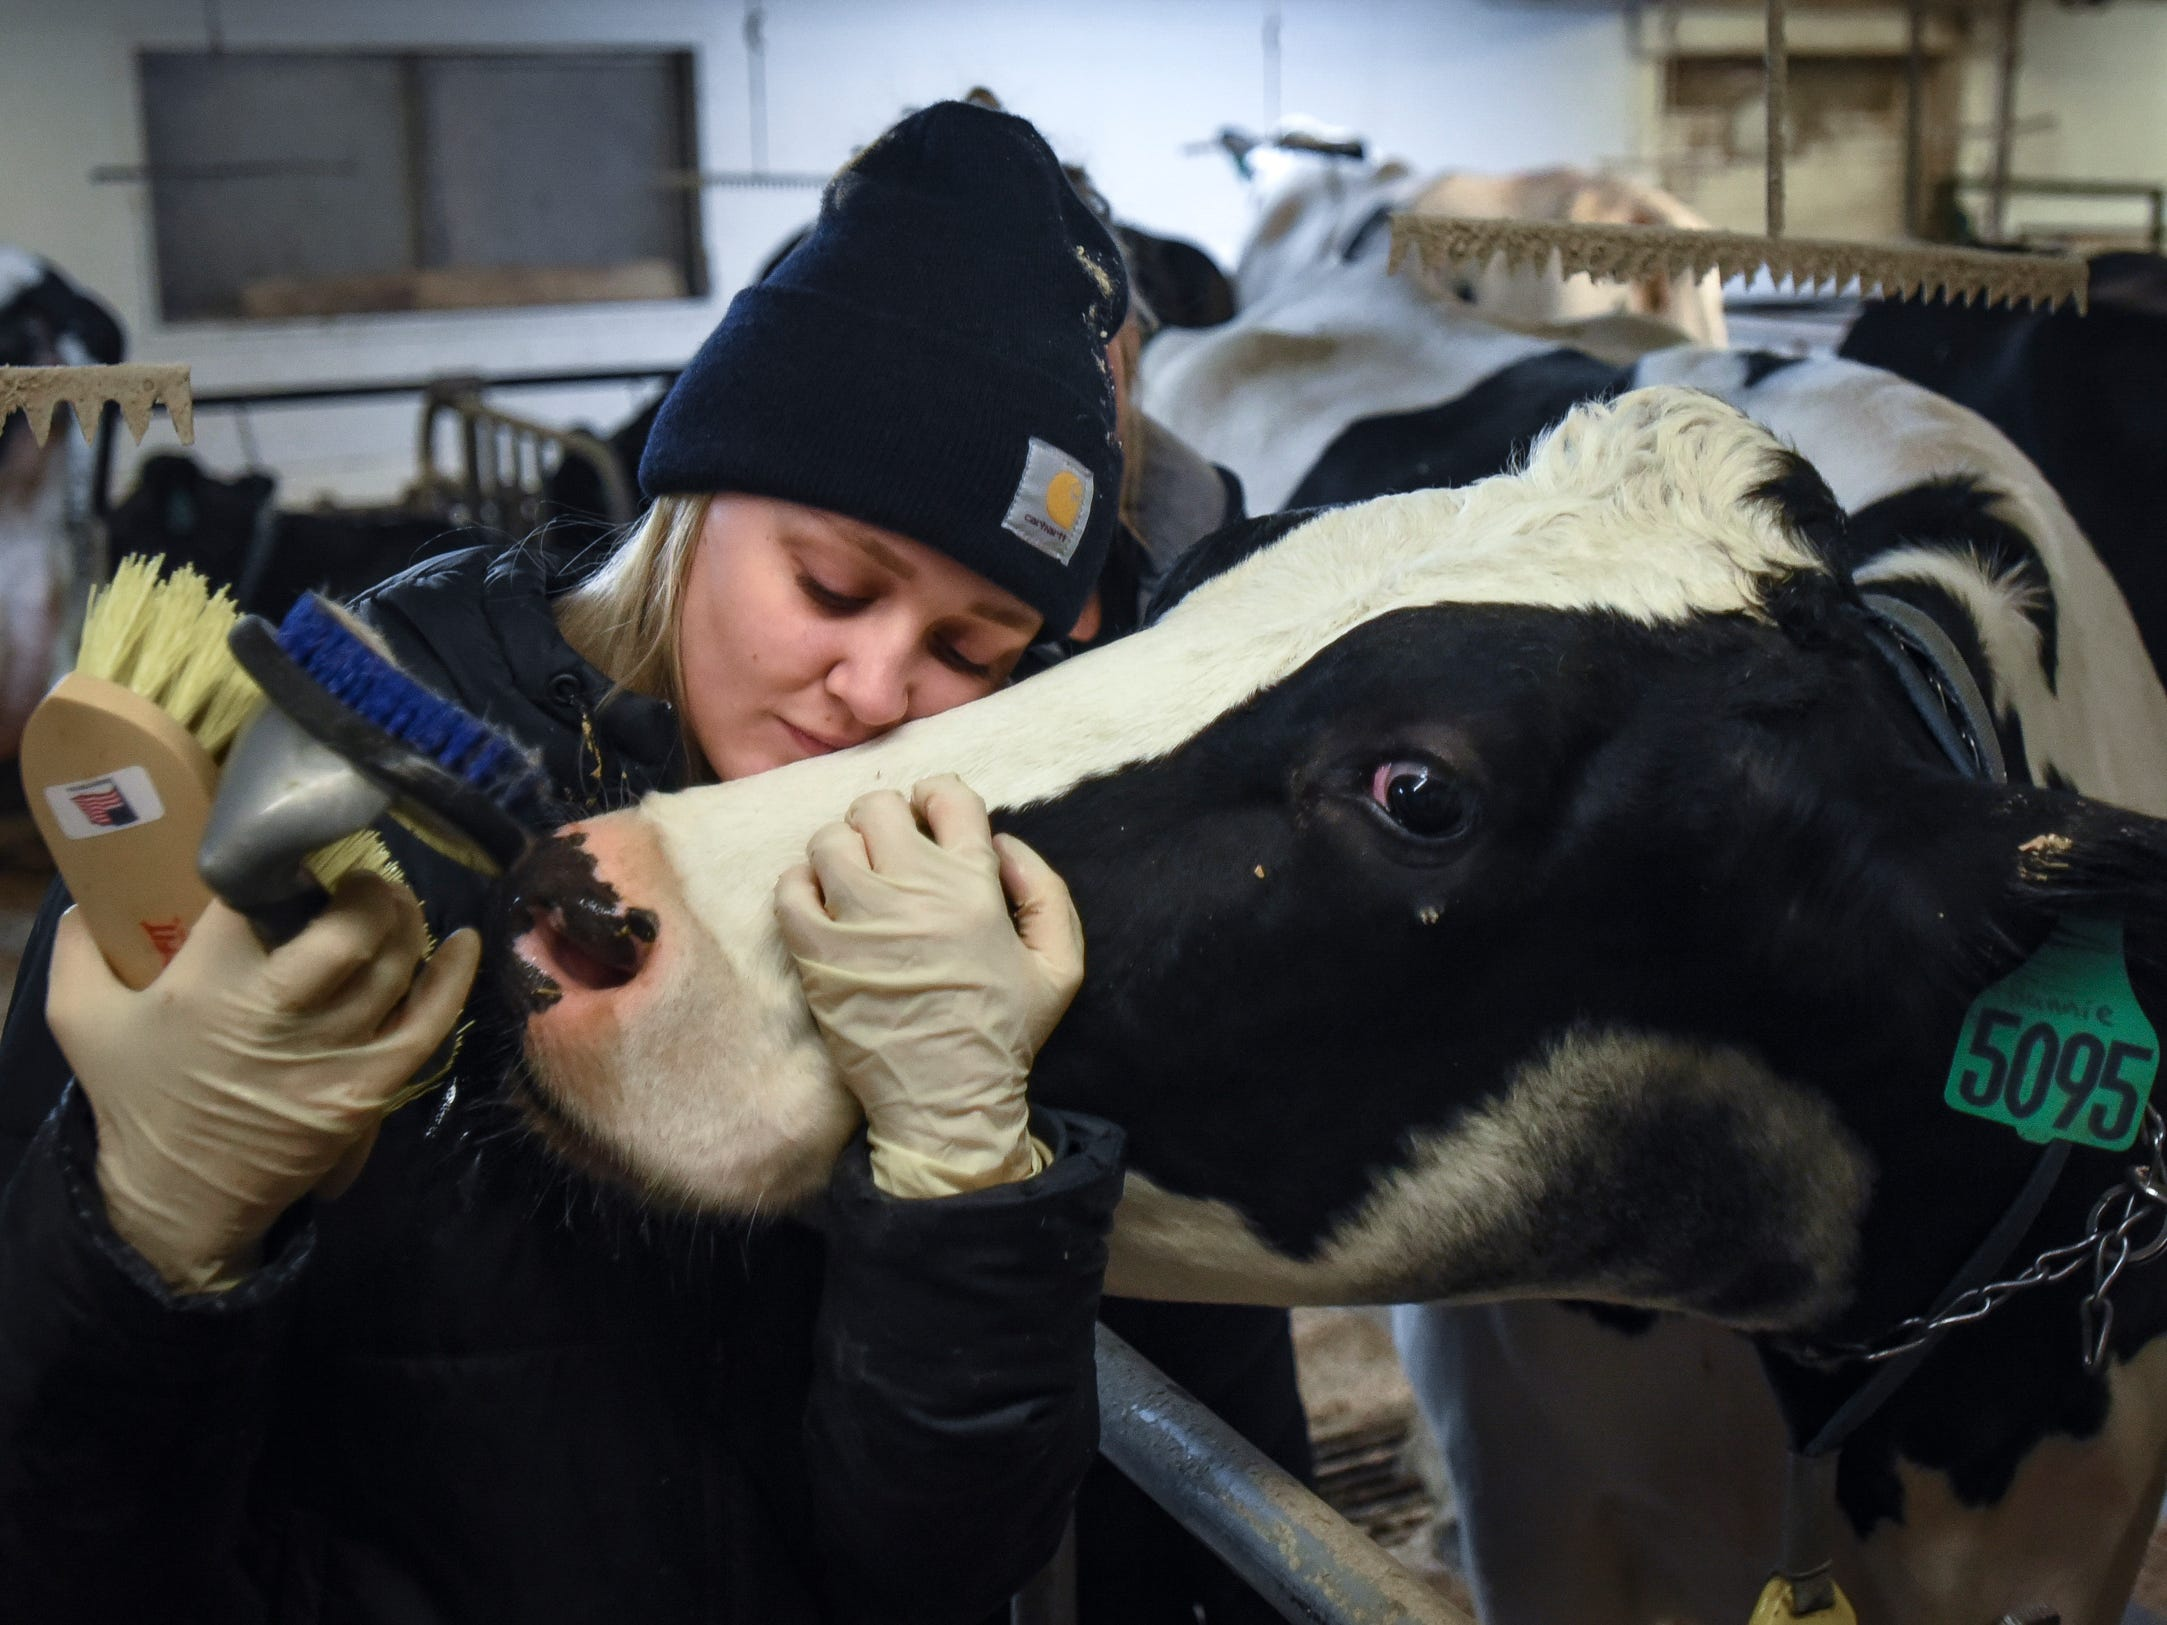 """I am absolutely loving it, I do not want to leave,"" MSU junior Deanna Blair said as she connects with ""Bunnie,"" an adult Holstein cow, Wednesday, Dec. 5, 2018, at MSU's Dairy Cattle Teaching Research Center in Lansing. The farm offered students a unique way to de-stress while studying for finals.  Ten dollars got them 30 minutes of cow brushing and petting time.  Blair spent most of those 30 minutes with Bunnie."